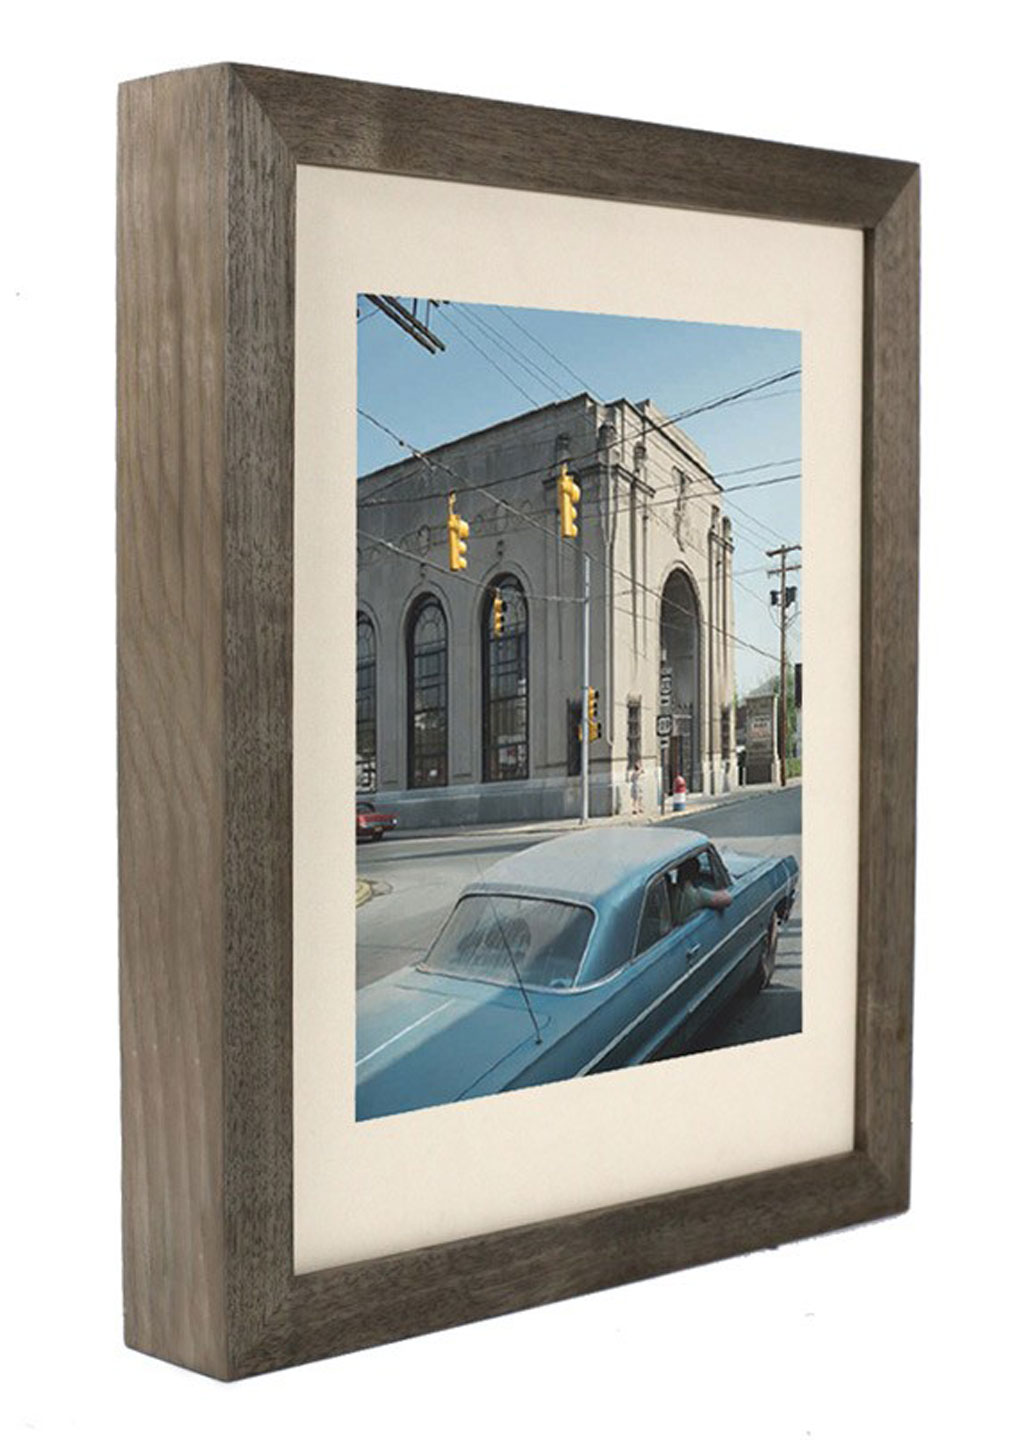 Stephen Shore: Selected Works, 1973-1981, Special Limited Edition (with Tipped-In Type-C Print in Custom-Made Frame) [SIGNED]